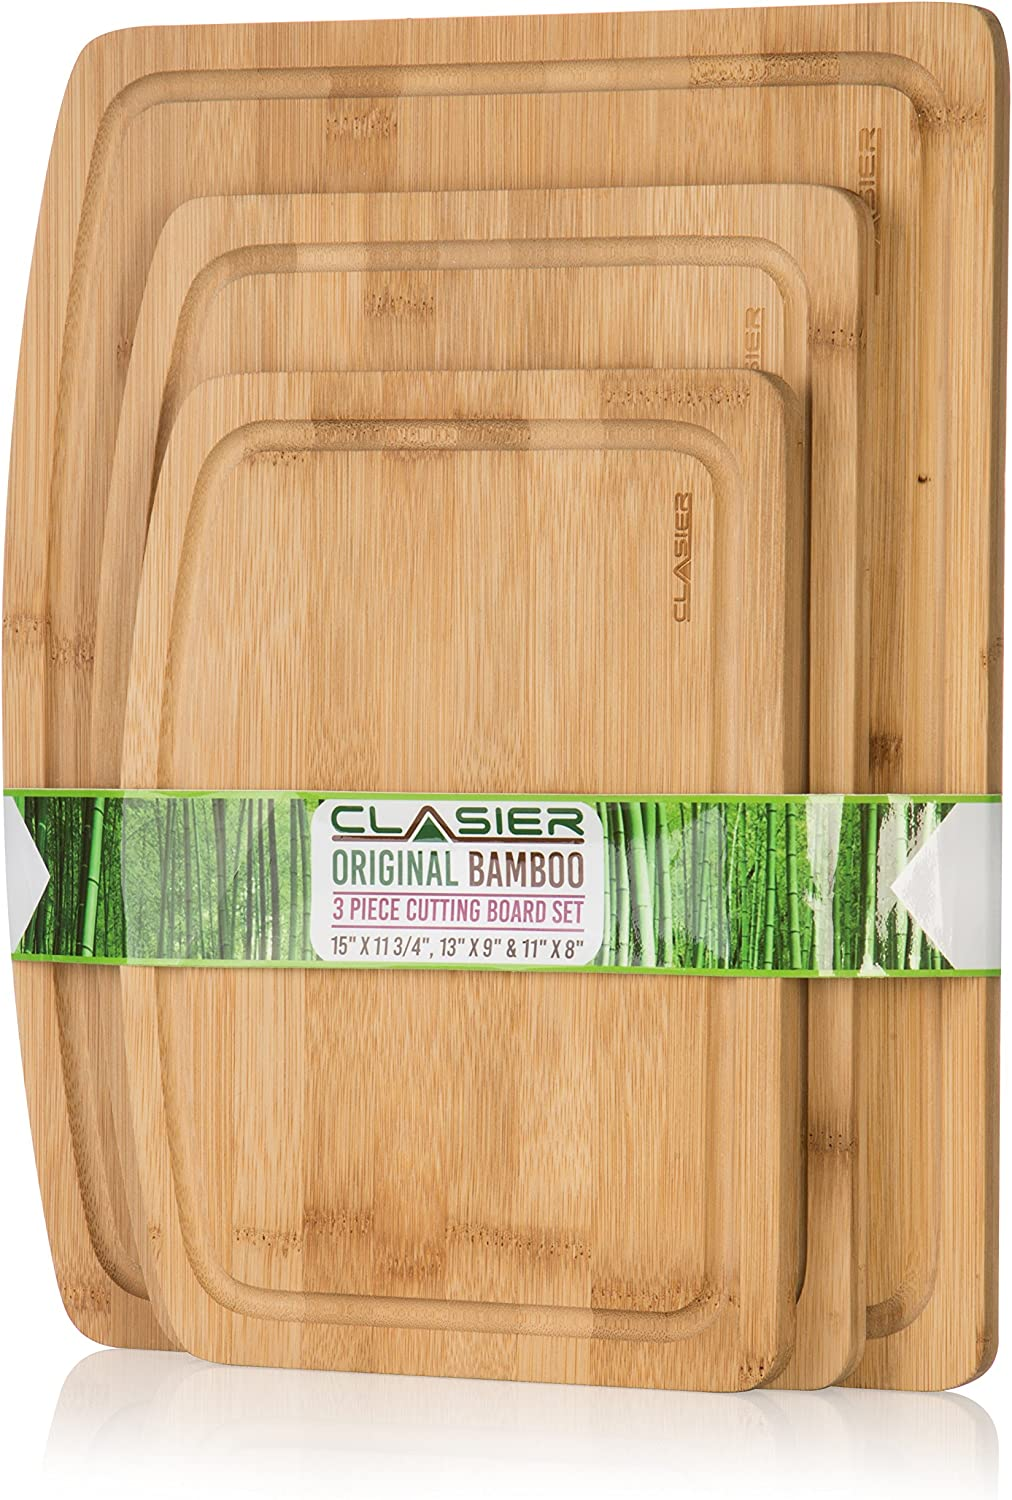 Premium Bamboo Cutting Boards for Kitchen Set of 3 - Eco-Friendly 100% Natural Bamboo Wooden Chopping Board with Juice Groove for Food Prep, Meat, Vegetables, Fruits, Crackers & Cheese - by Clasier